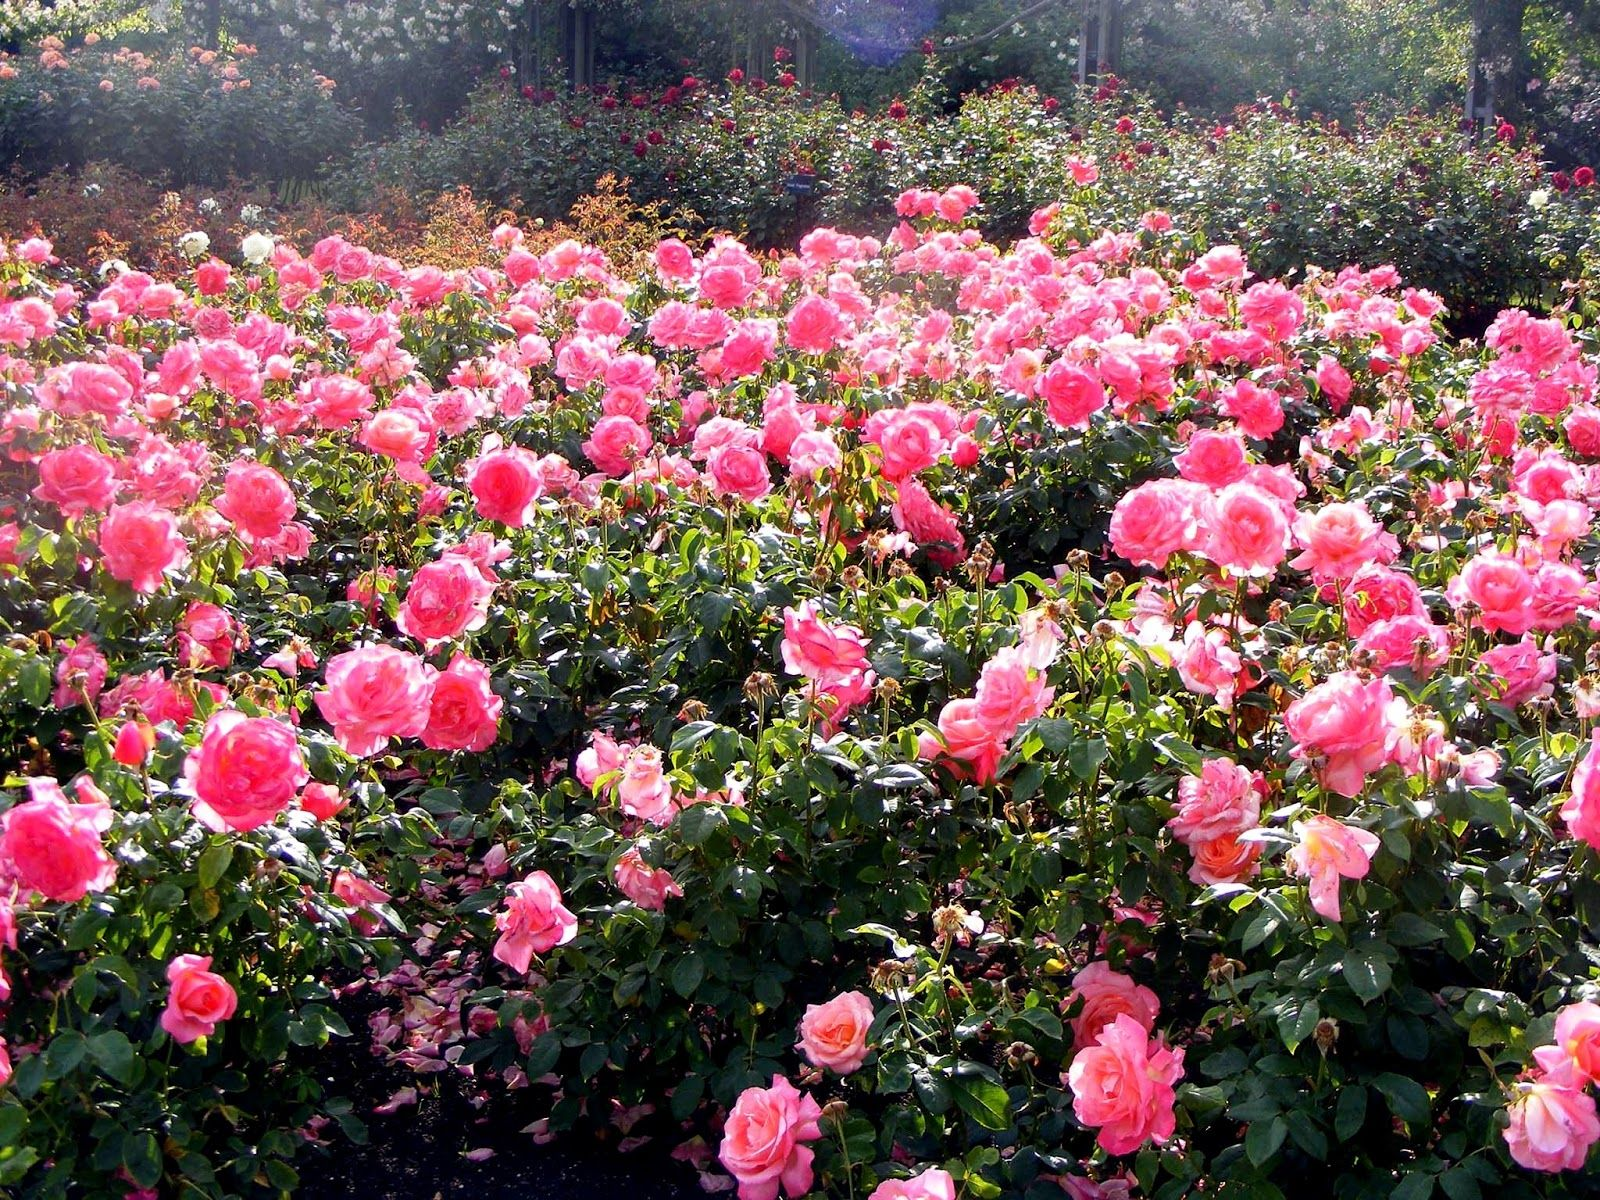 Most Beautiful Rose Gardens In The World queen mary's garden - most beautiful rose garden ever! | tourism